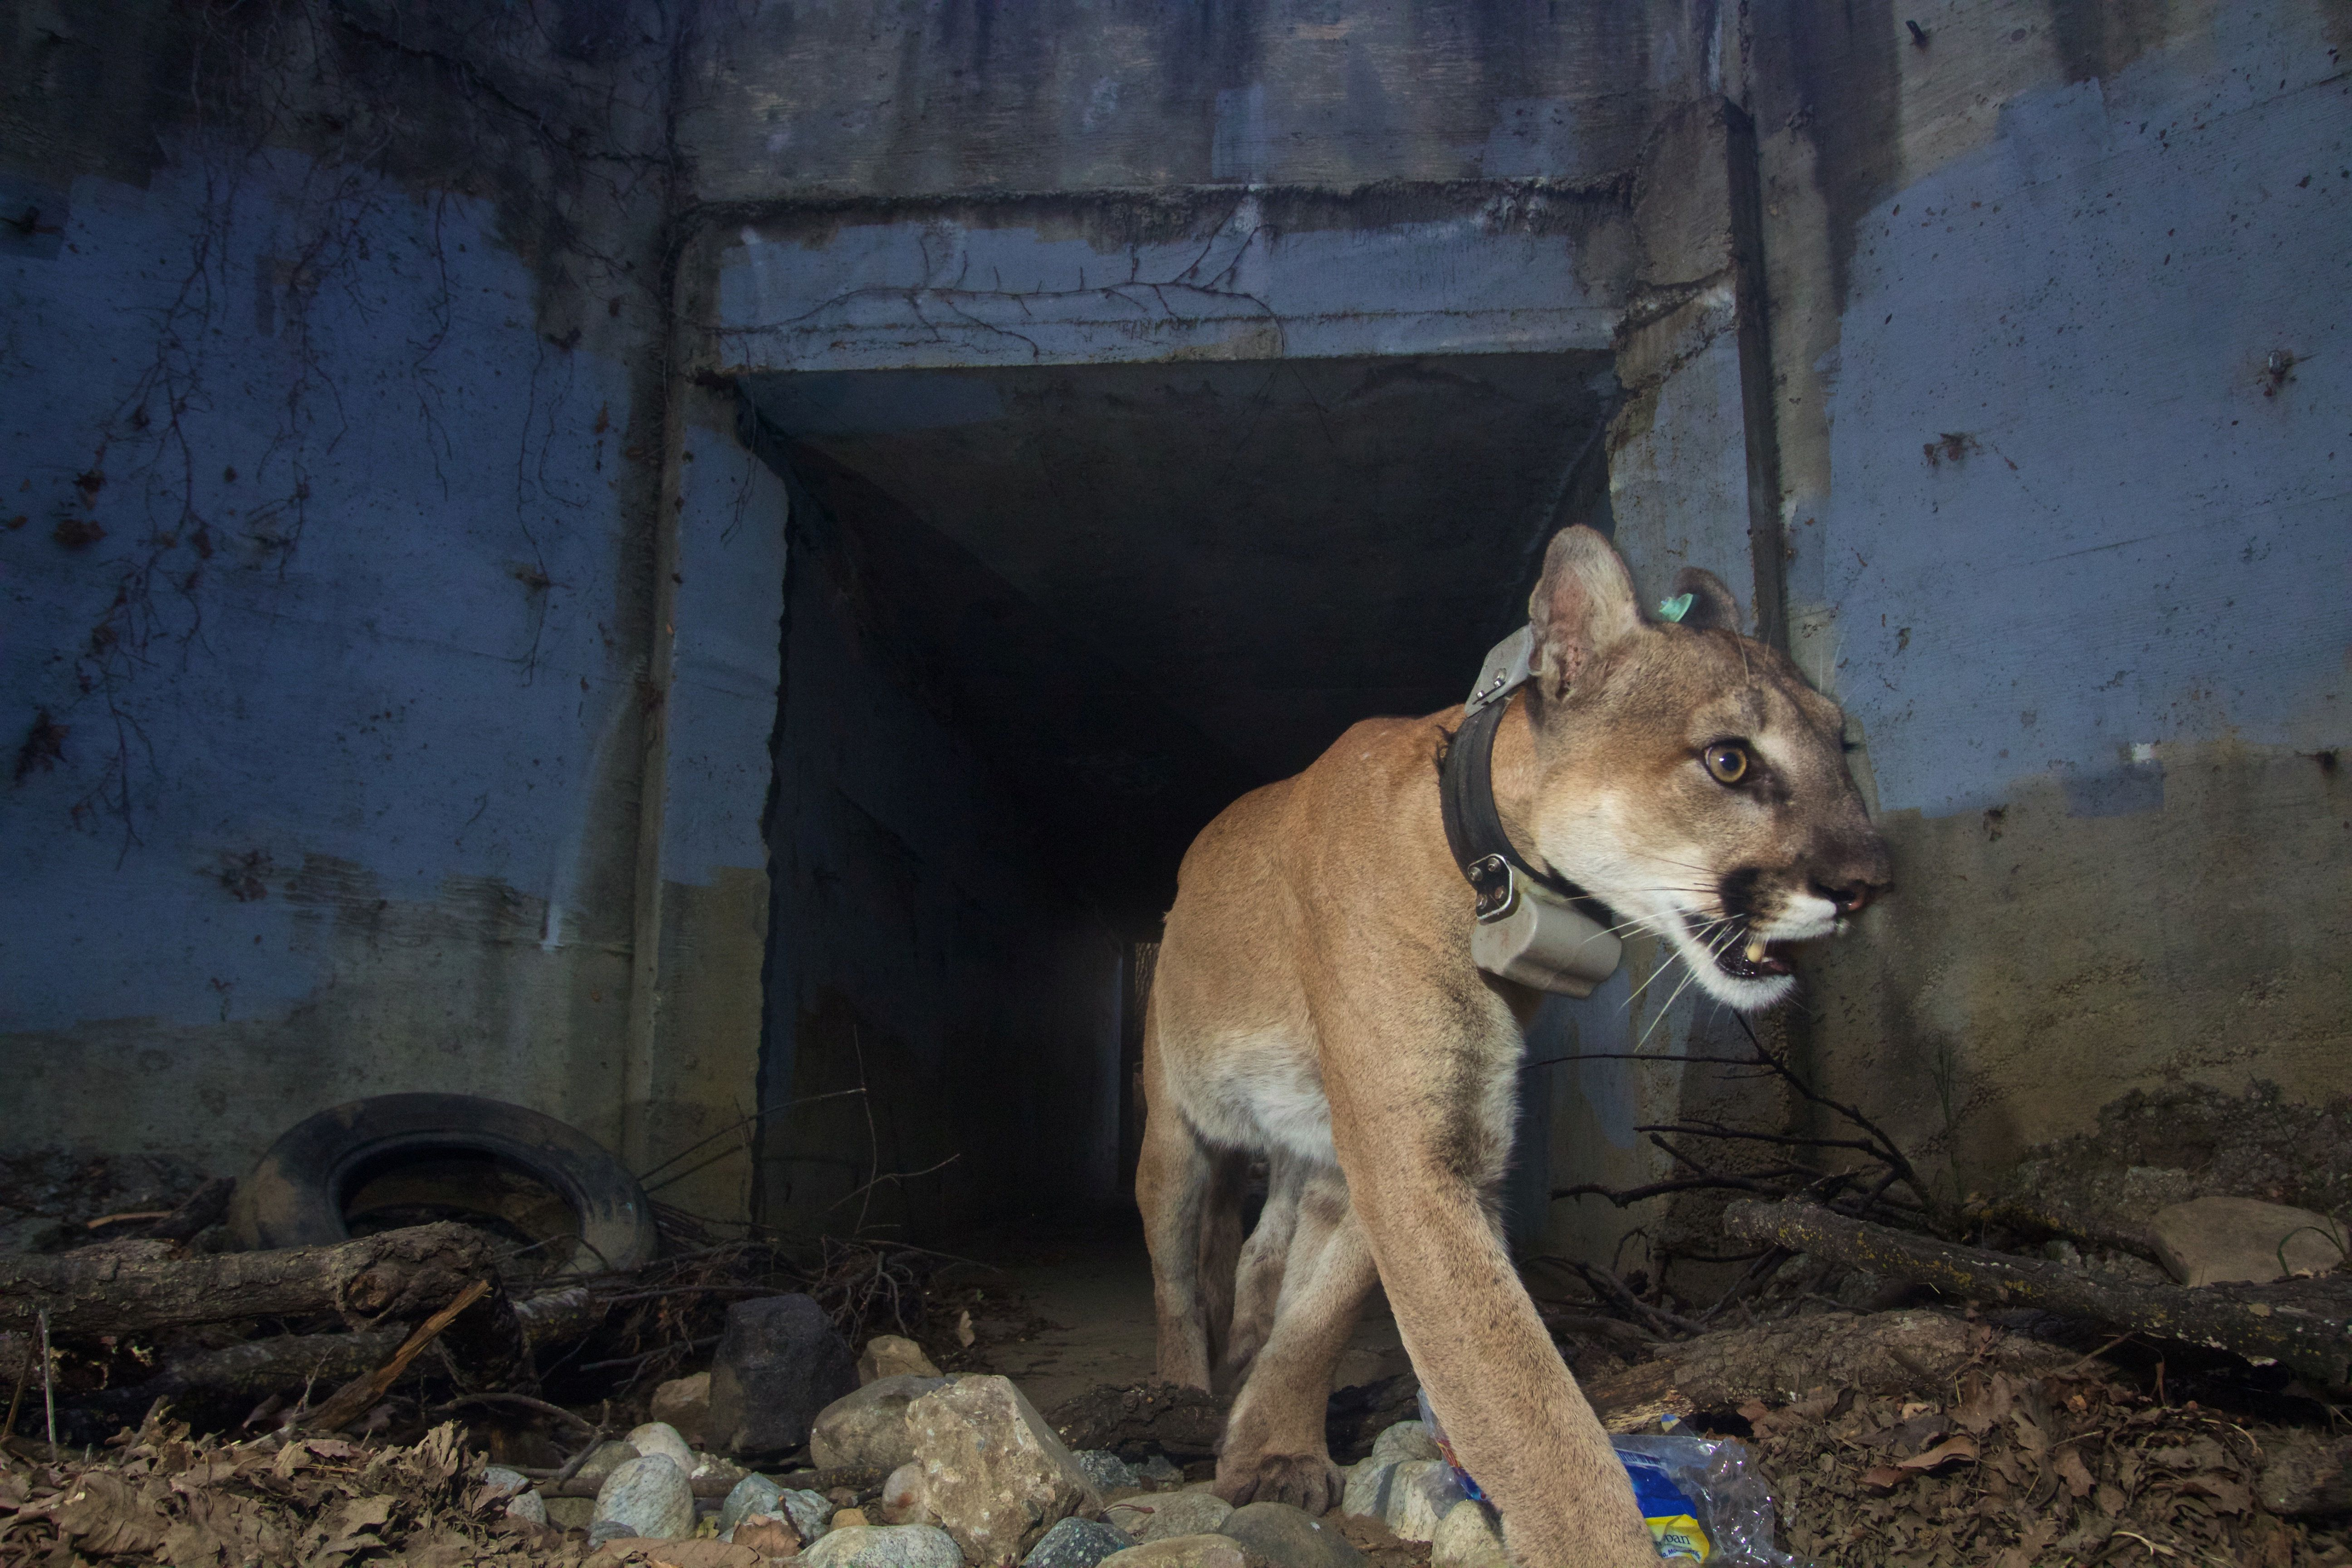 An adult male mountain lion known as P-64, walks through a tunnel heading south in this National Park Service photo captured near the Santa Monica Mountains, California, U.S., May 22, 2018. Picture taken May 22, 2018.  Courtesy National Park Service/Handout via REUTERS  ATTENTION EDITORS - THIS IMAGE HAS BEEN SUPPLIED BY A THIRD PARTY.